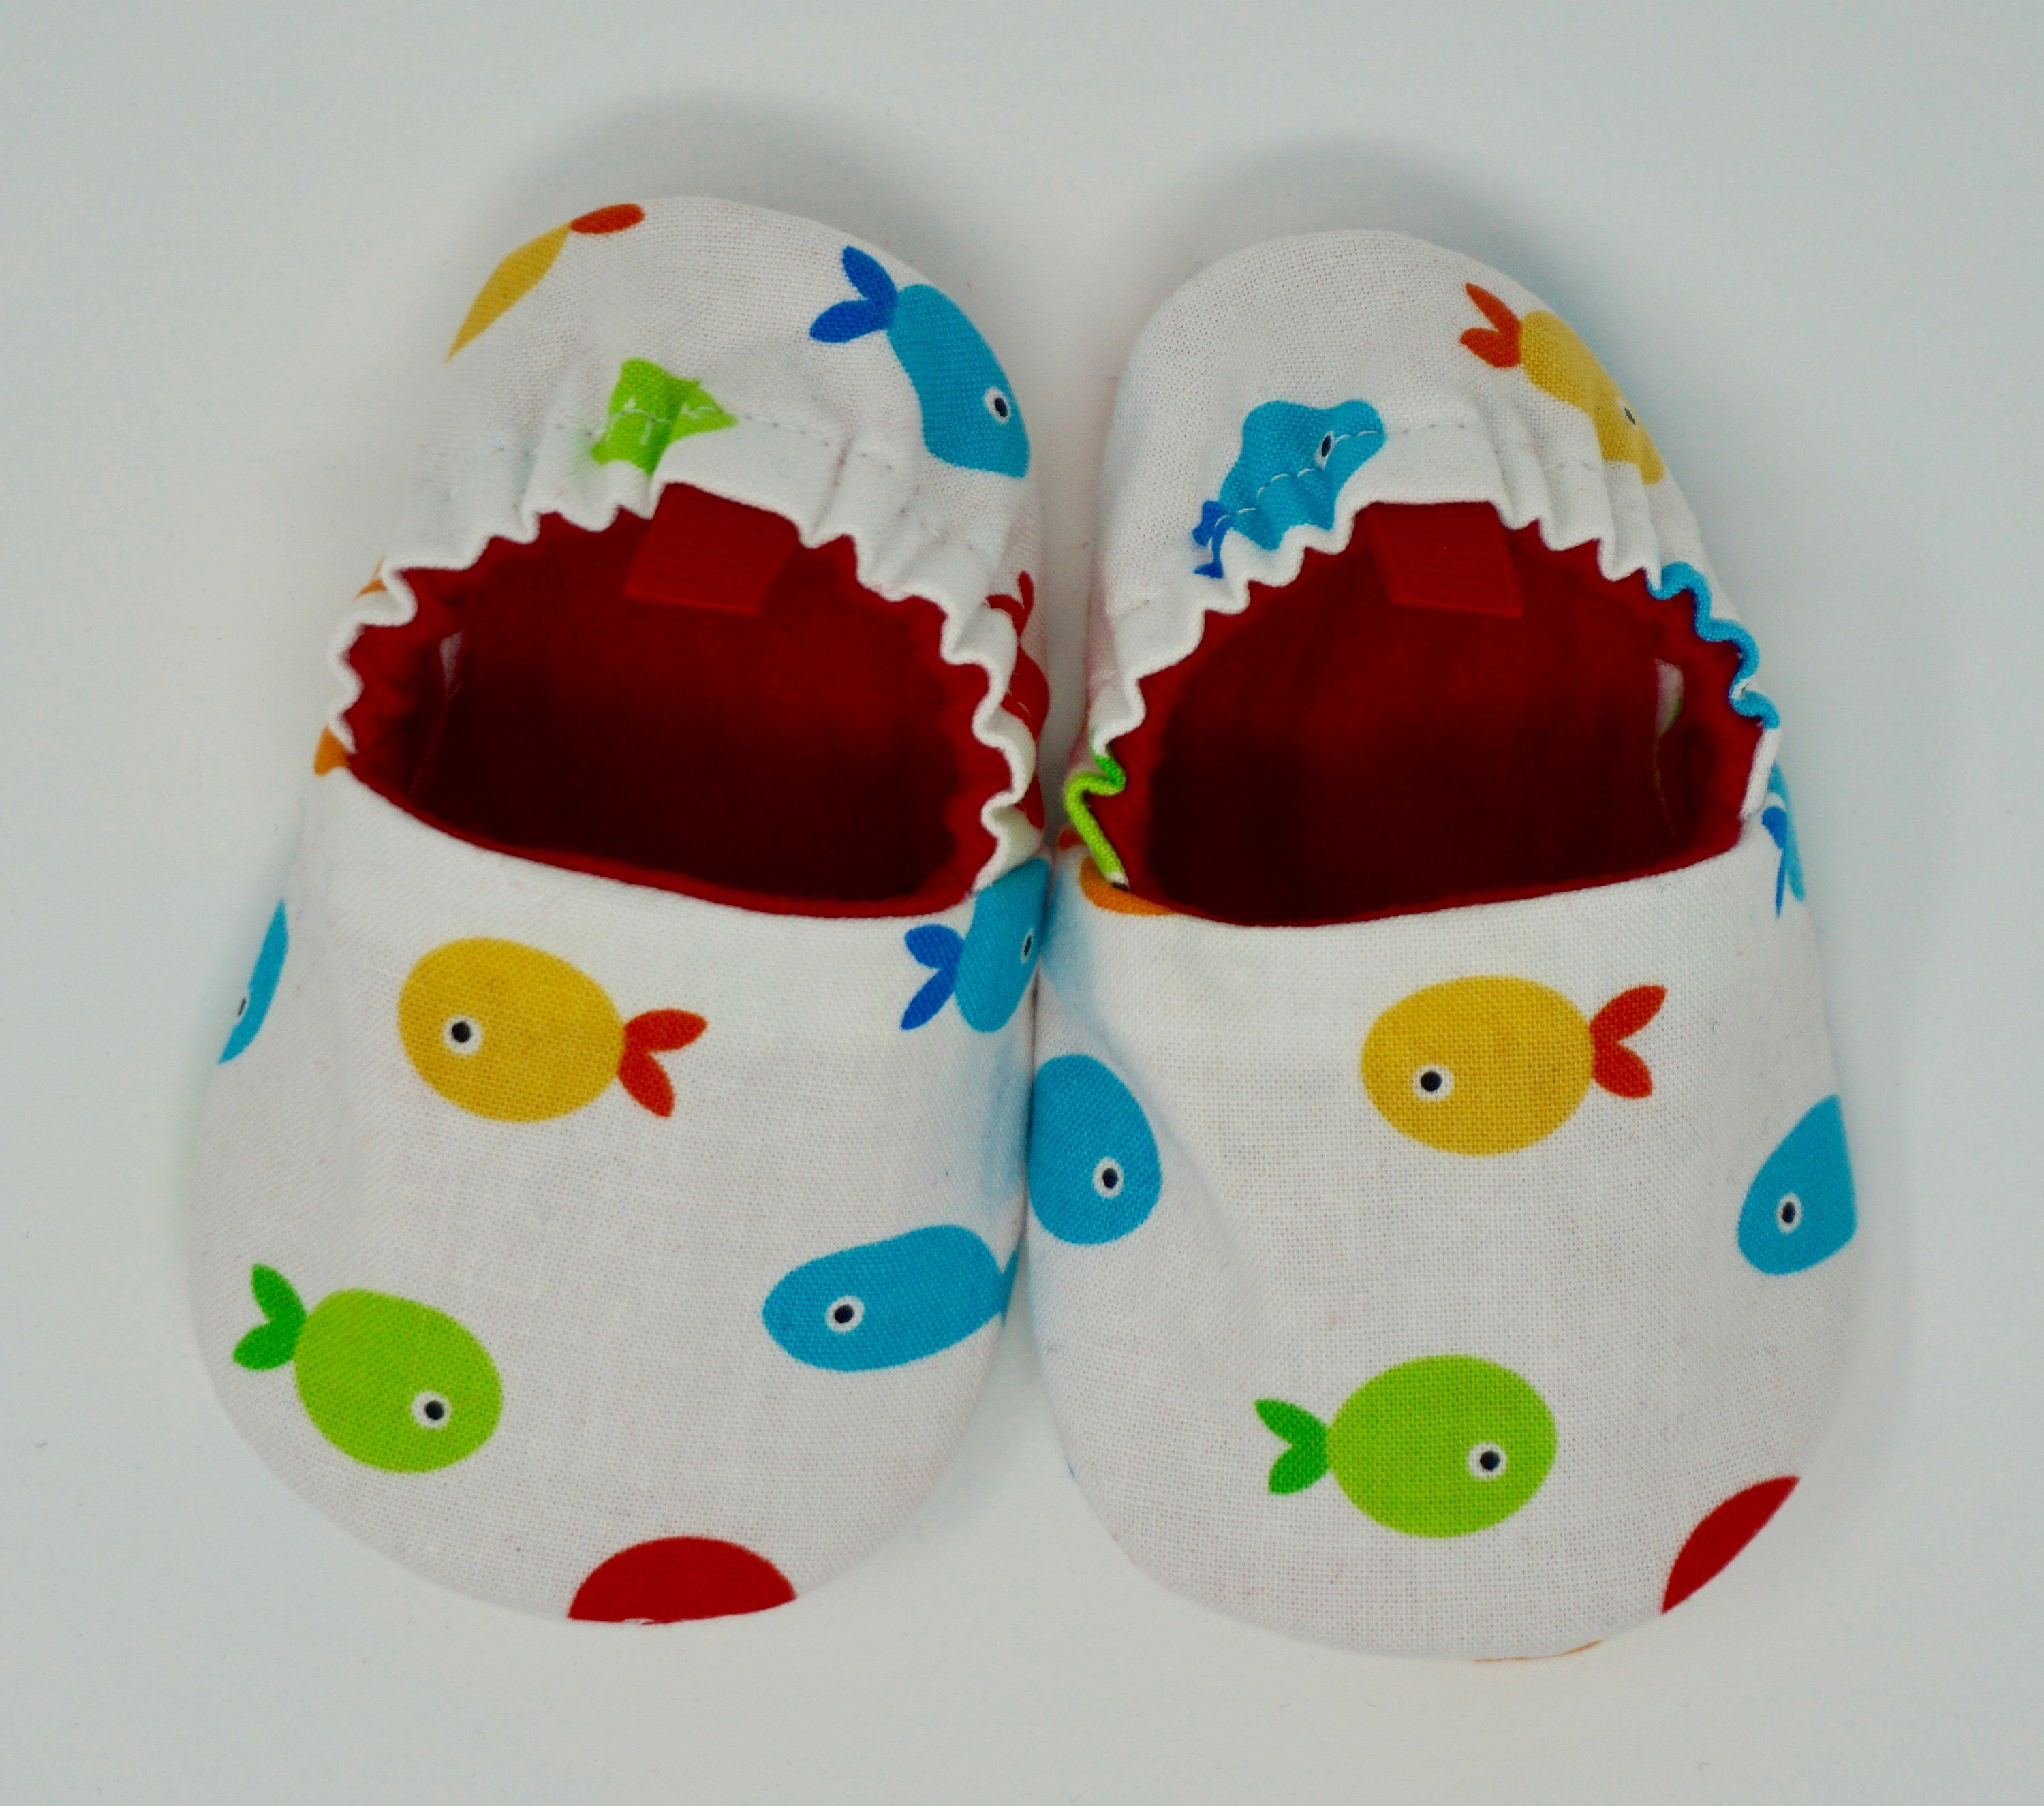 fdbb5134ef5 Avocado Baby Shoes